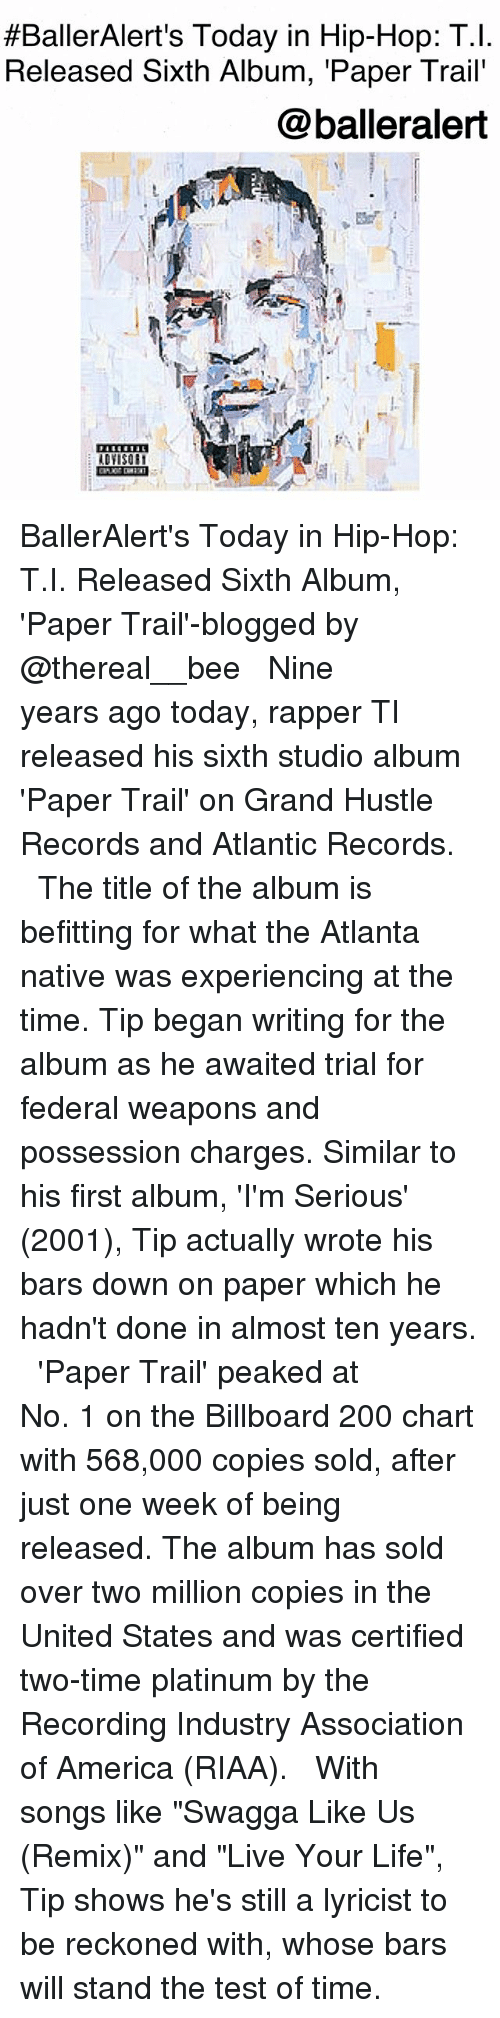 "America, Bailey Jay, and Billboard:  #BallerAlert's Today in Hip-Hop: T.!  Released Sixth Album, 'Paper Trail'  @balleralert  ADYISOE BallerAlert's Today in Hip-Hop: T.I. Released Sixth Album, 'Paper Trail'-blogged by @thereal__bee ⠀⠀⠀⠀⠀⠀⠀⠀⠀ ⠀⠀ Nine years ago today, rapper TI released his sixth studio album 'Paper Trail' on Grand Hustle Records and Atlantic Records. ⠀⠀⠀⠀⠀⠀⠀⠀⠀ ⠀⠀ The title of the album is befitting for what the Atlanta native was experiencing at the time. Tip began writing for the album as he awaited trial for federal weapons and possession charges. Similar to his first album, 'I'm Serious' (2001), Tip actually wrote his bars down on paper which he hadn't done in almost ten years. ⠀⠀⠀⠀⠀⠀⠀⠀⠀ ⠀⠀ 'Paper Trail' peaked at No. 1 on the Billboard 200 chart with 568,000 copies sold, after just one week of being released. The album has sold over two million copies in the United States and was certified two-time platinum by the Recording Industry Association of America (RIAA). ⠀⠀⠀⠀⠀⠀⠀⠀⠀ ⠀⠀ With songs like ""Swagga Like Us (Remix)"" and ""Live Your Life"", Tip shows he's still a lyricist to be reckoned with, whose bars will stand the test of time."